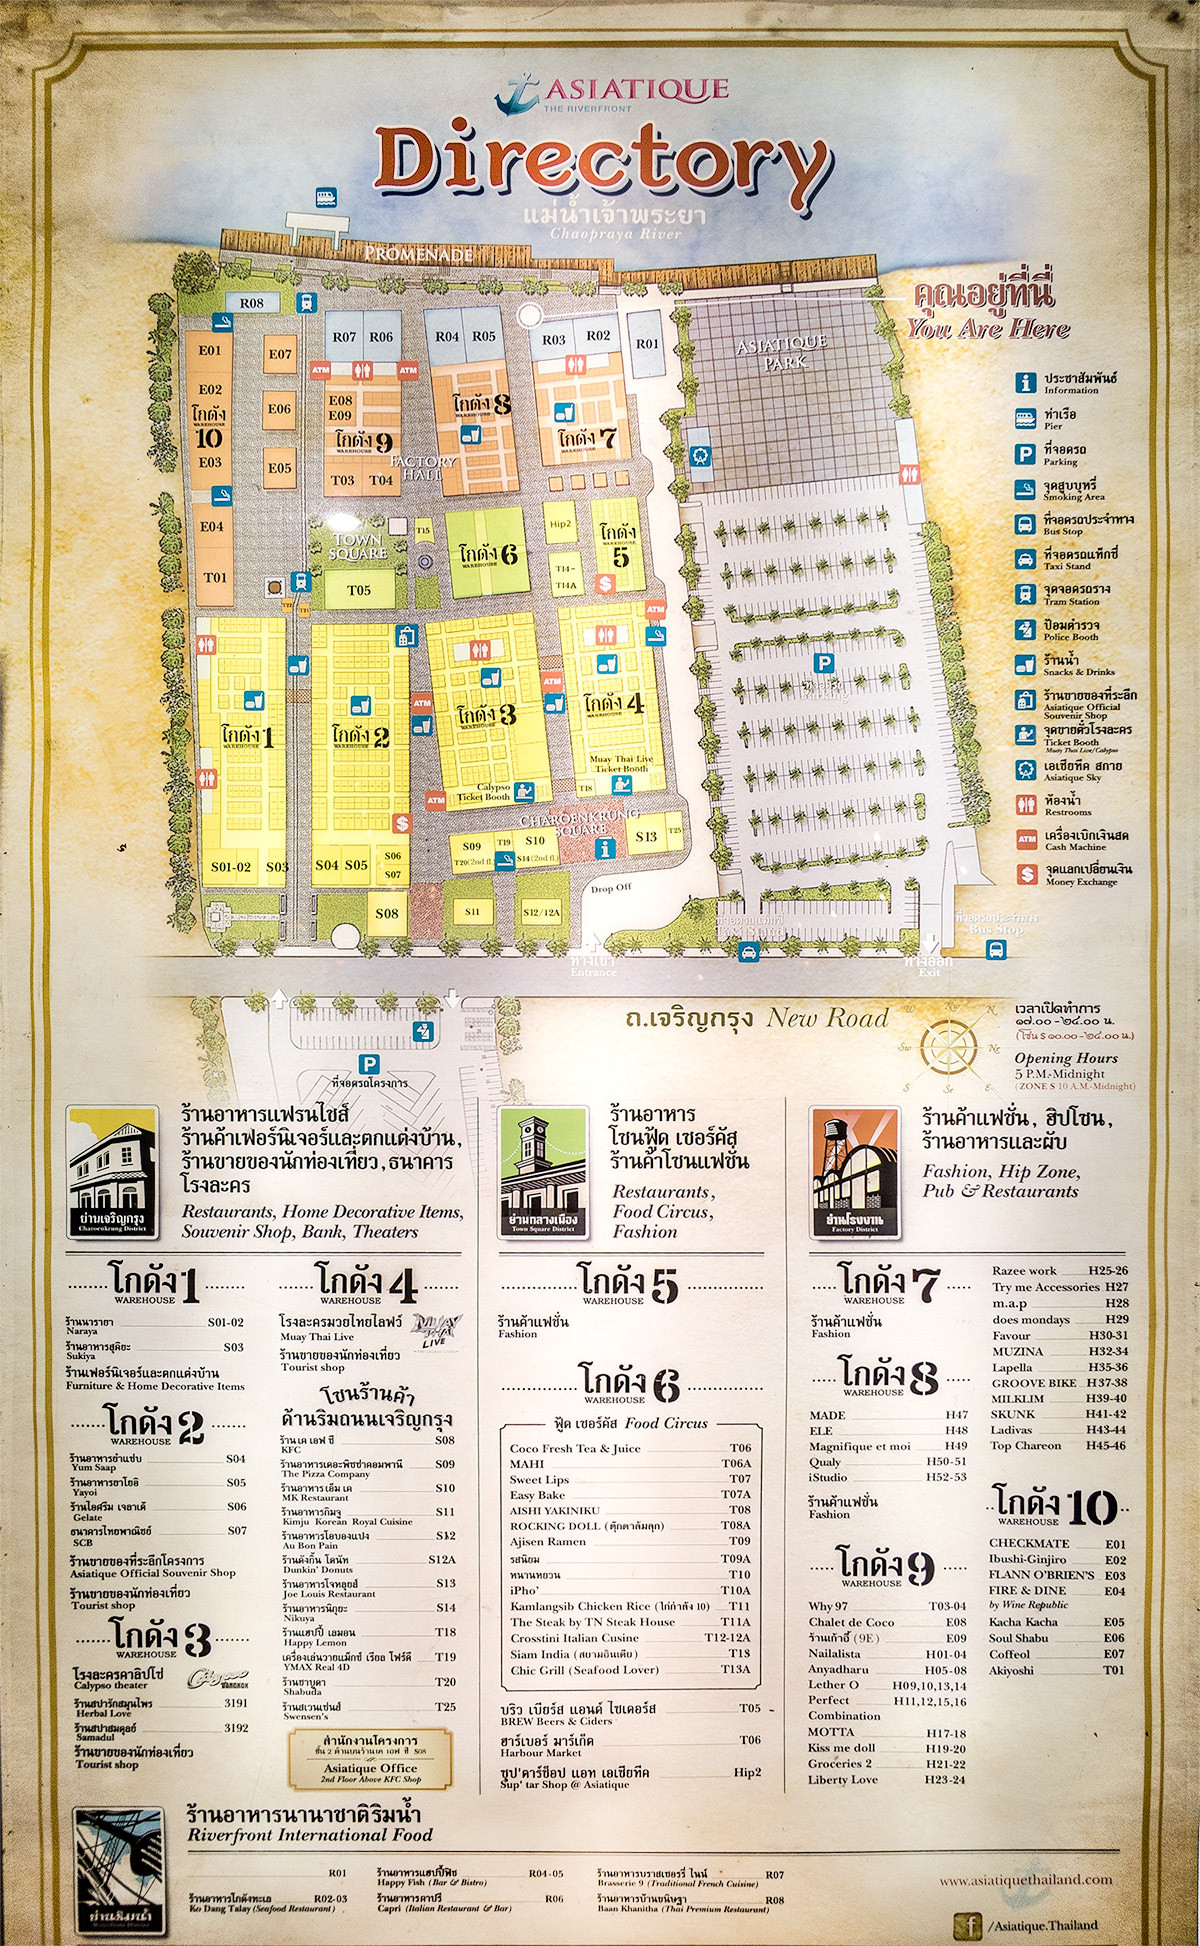 Map of Asiatique in Bangkok, Thailand